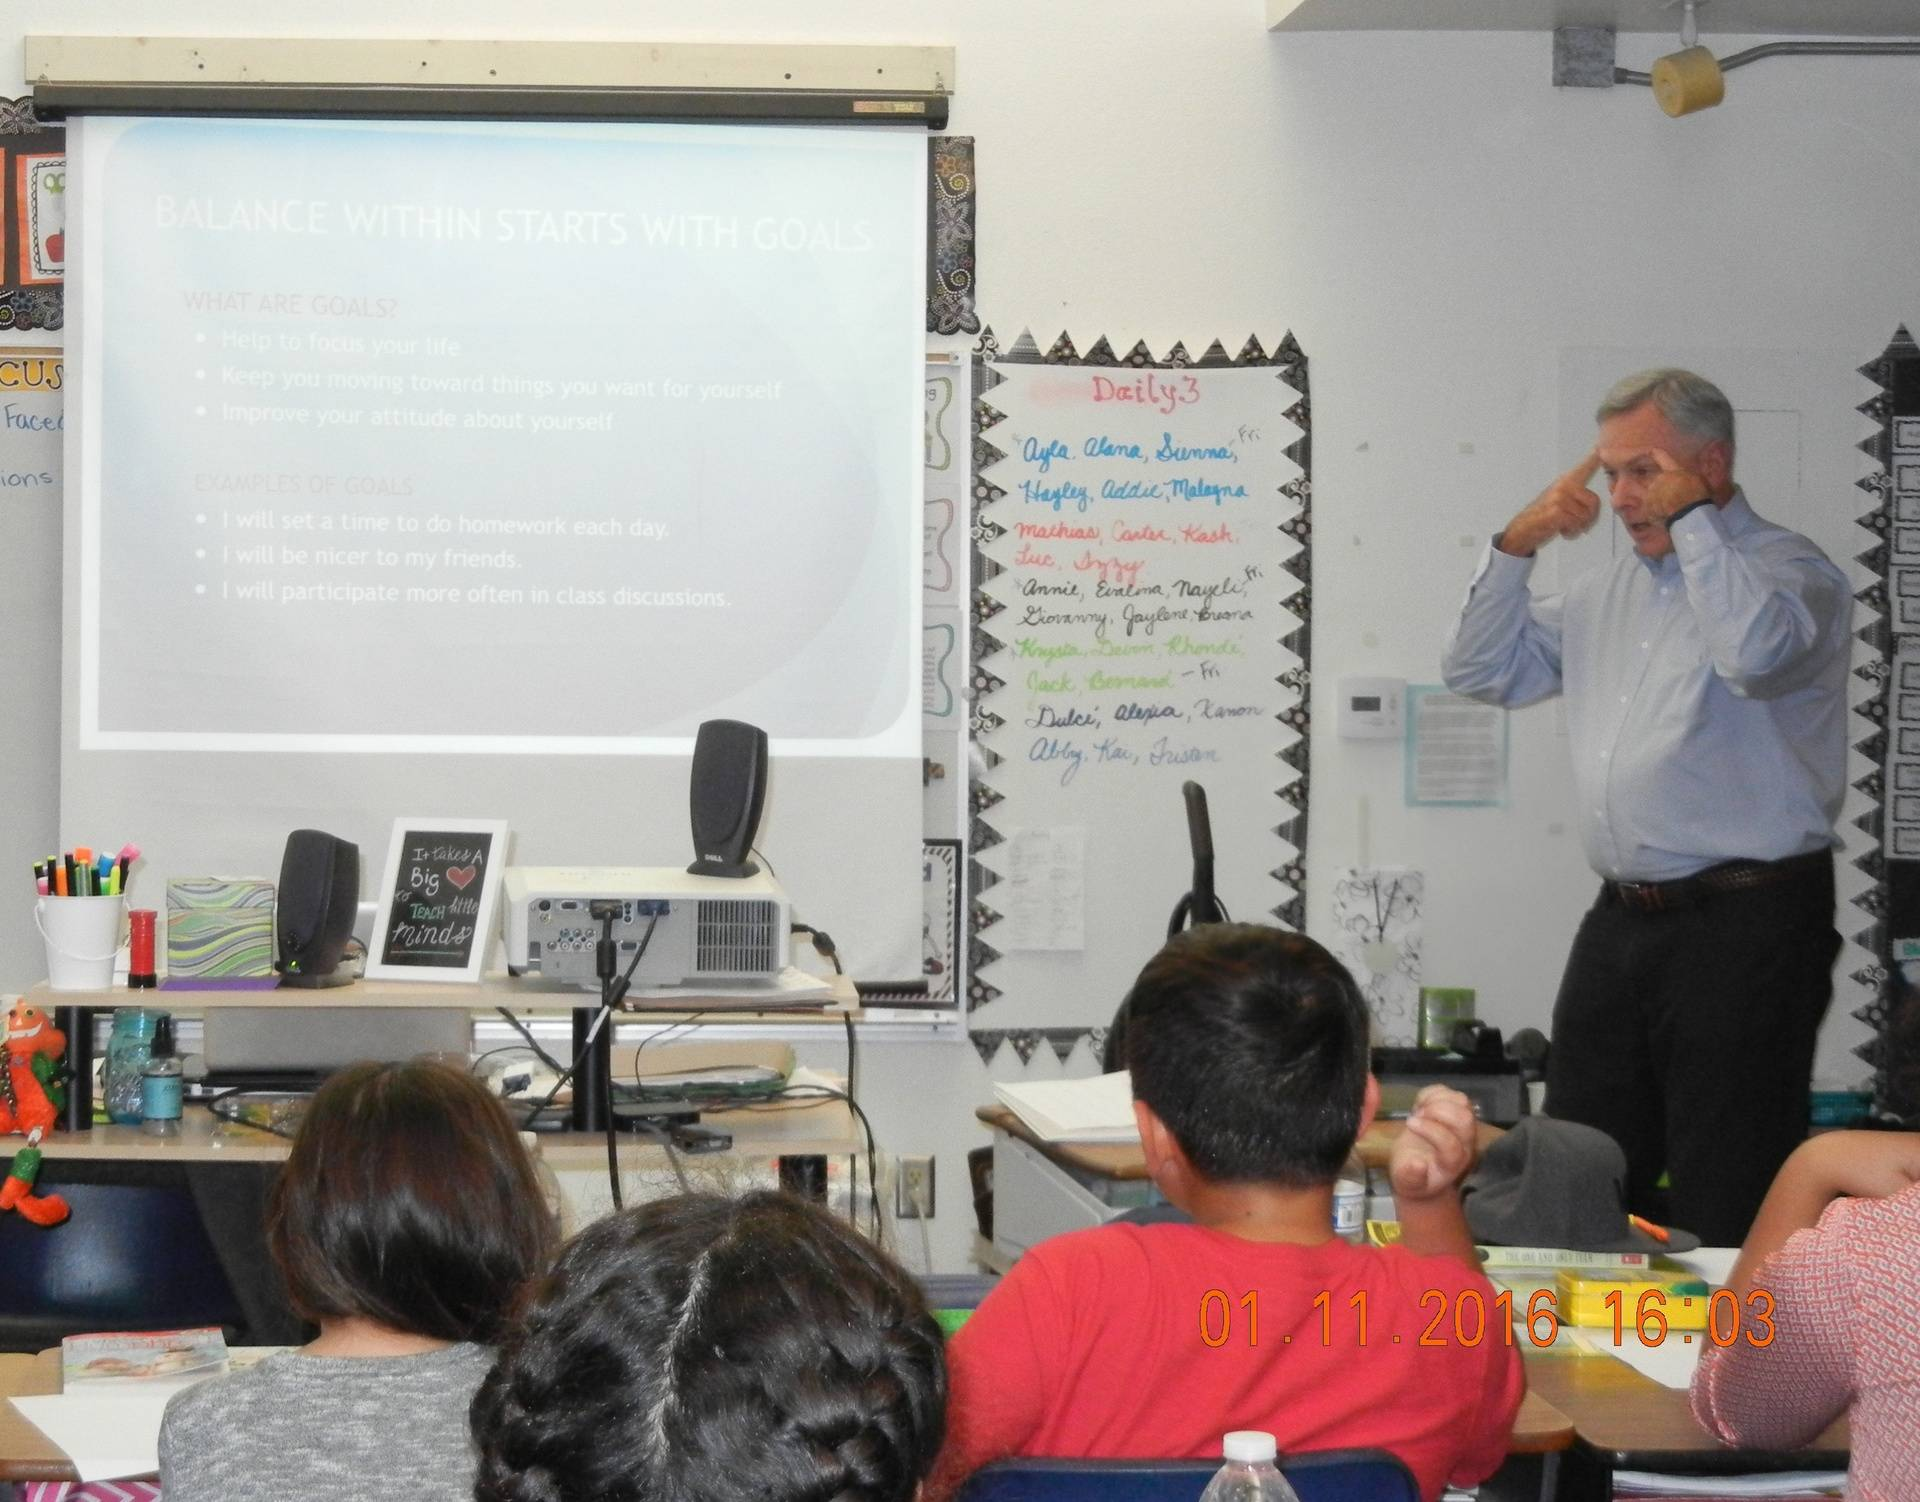 Speaking at McAuliffe Elementary School, Oceanside, CA